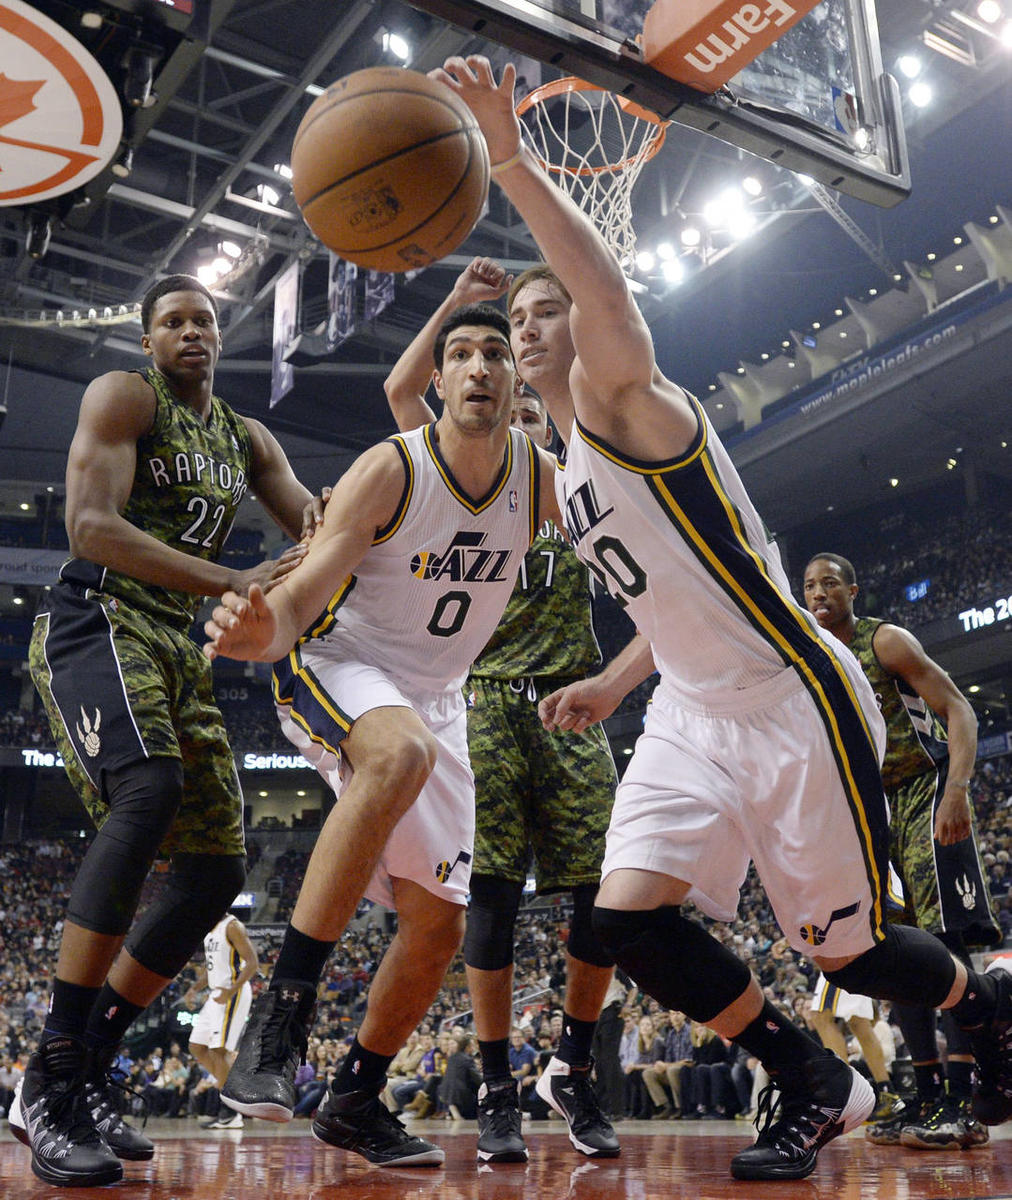 Utah Jazz center Enes Kanter (0) and teammate Gordon Hayward, right, battle Toronto Raptors' Rudy Gay for the ball during the first half of an NBA basketball game in Toronto on Saturday, Nov. 9, 2013.